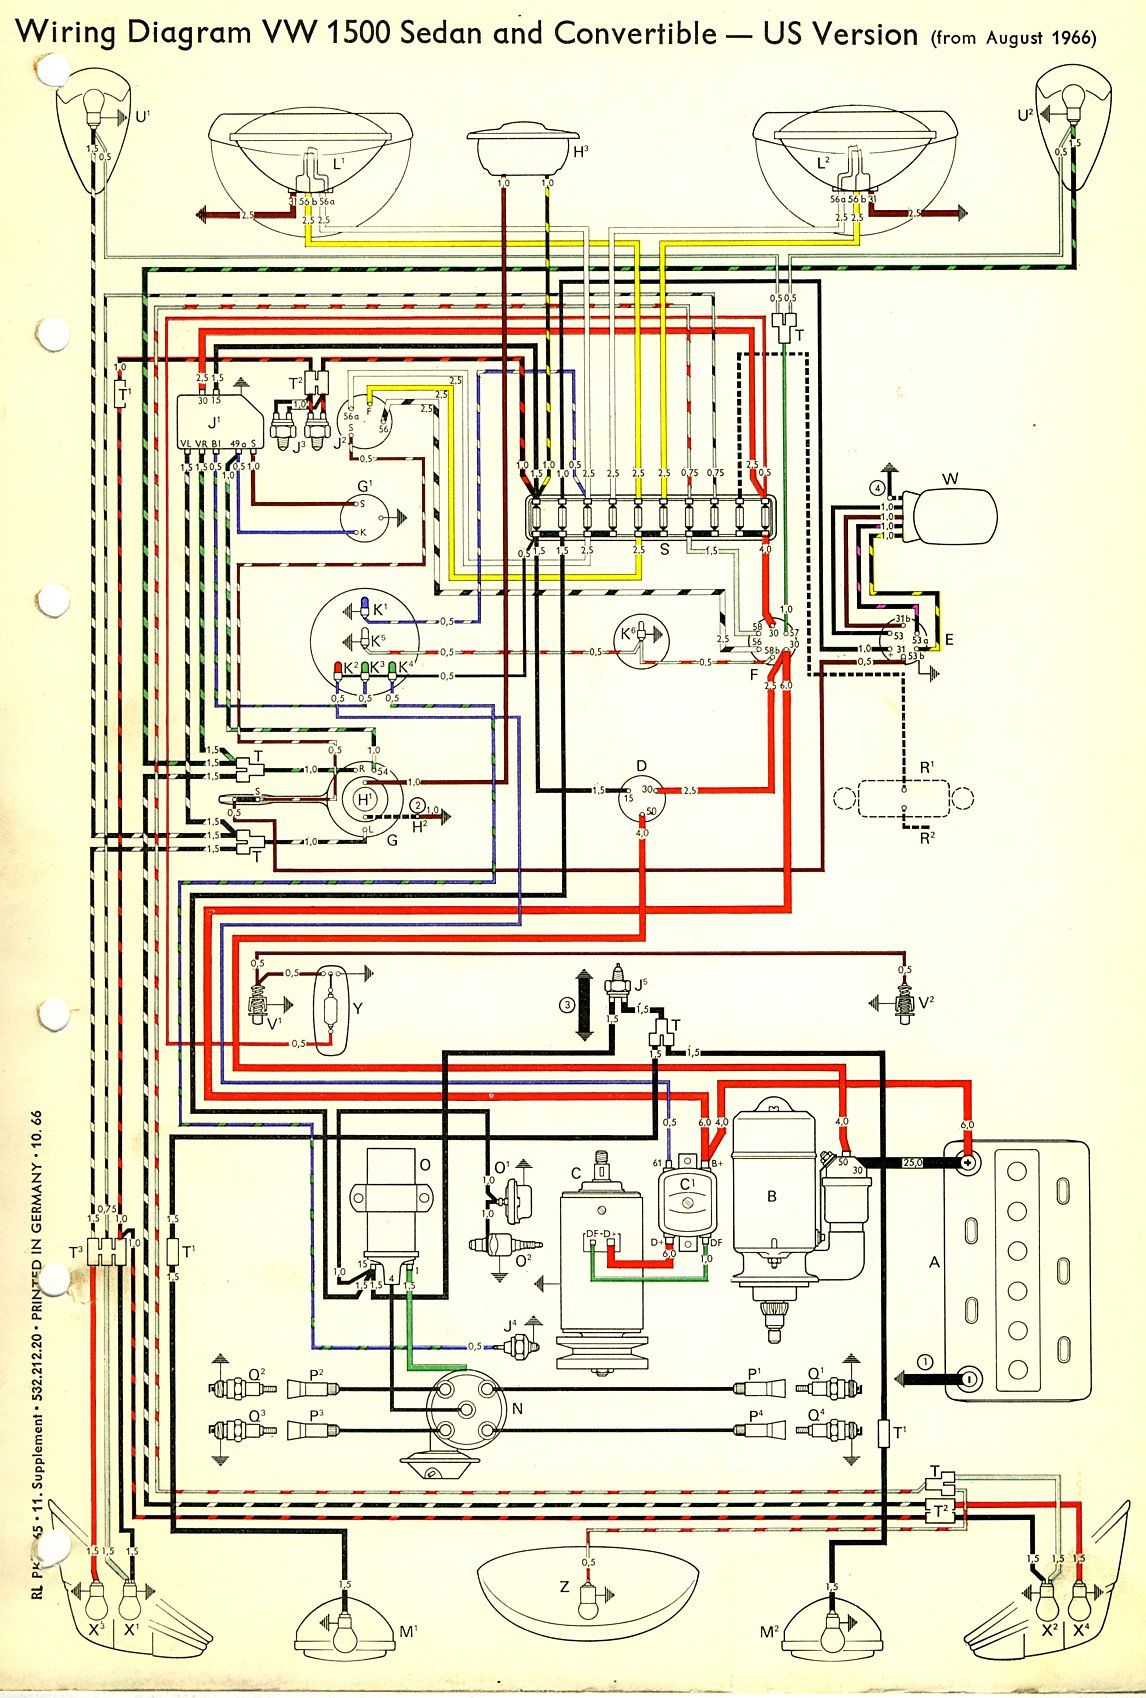 1972 vw bug wiring simple wiring diagram 67 vw wiring harness simple wiring diagram electric vw bug 1972 vw bug wiring